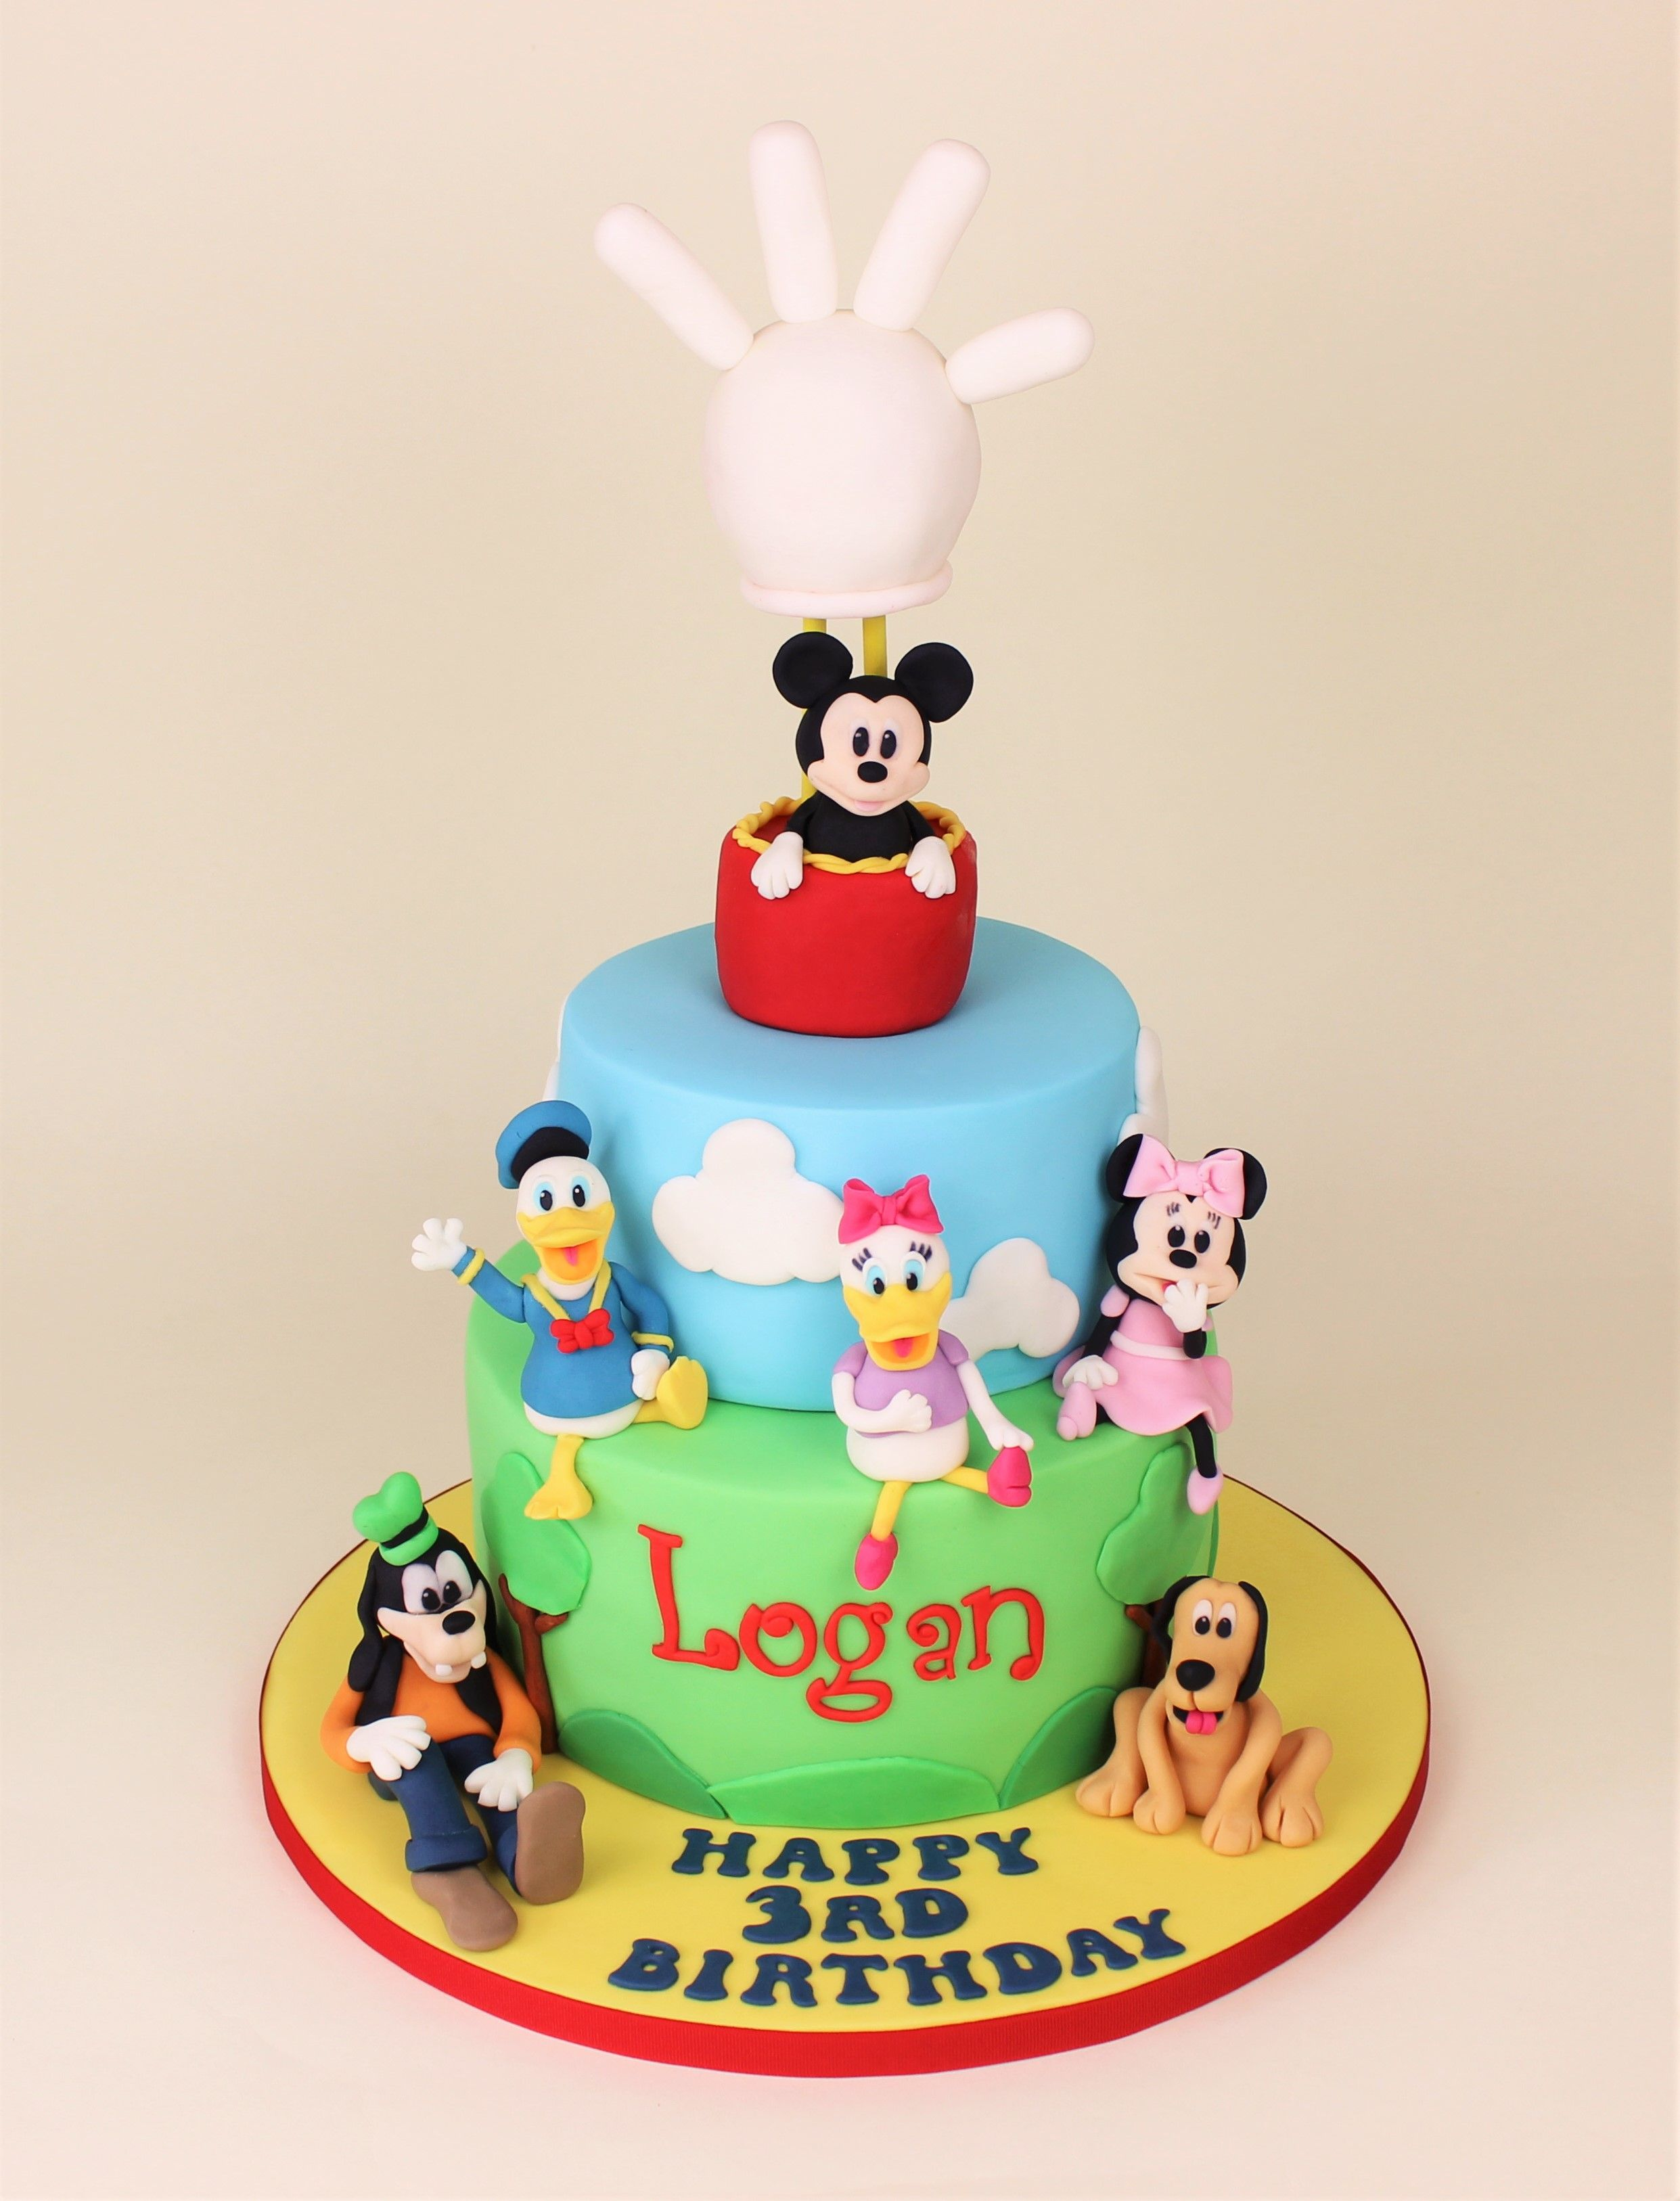 Disney Cake With Mickey Mouse Minnie Mouse Daisy Duck